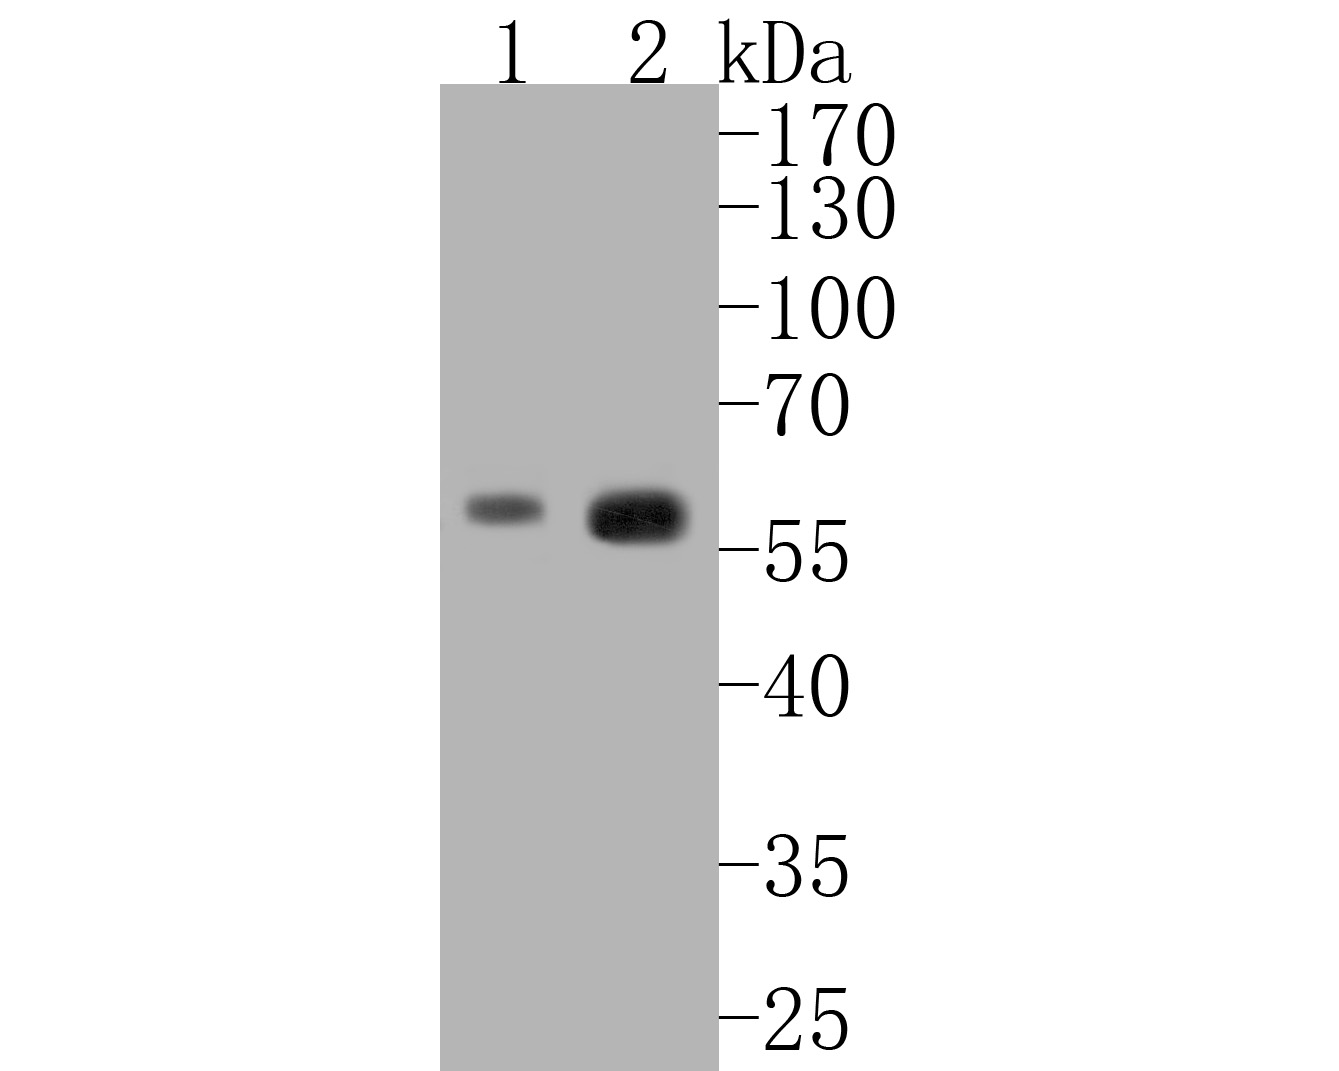 Western blot analysis of Caspase-8 on different lysates. Proteins were transferred to a PVDF membrane and blocked with 5% BSA in PBS for 1 hour at room temperature. The primary antibody (ET1603-16, 1/500) was used in 5% BSA at room temperature for 2 hours. Goat Anti-Rabbit IgG - HRP Secondary Antibody (HA1001) at 1:5,000 dilution was used for 1 hour at room temperature.<br />  Positive control: <br />  Lane 1: Jurkat cell lysate<br />  Lane 2: K562 cell lysate